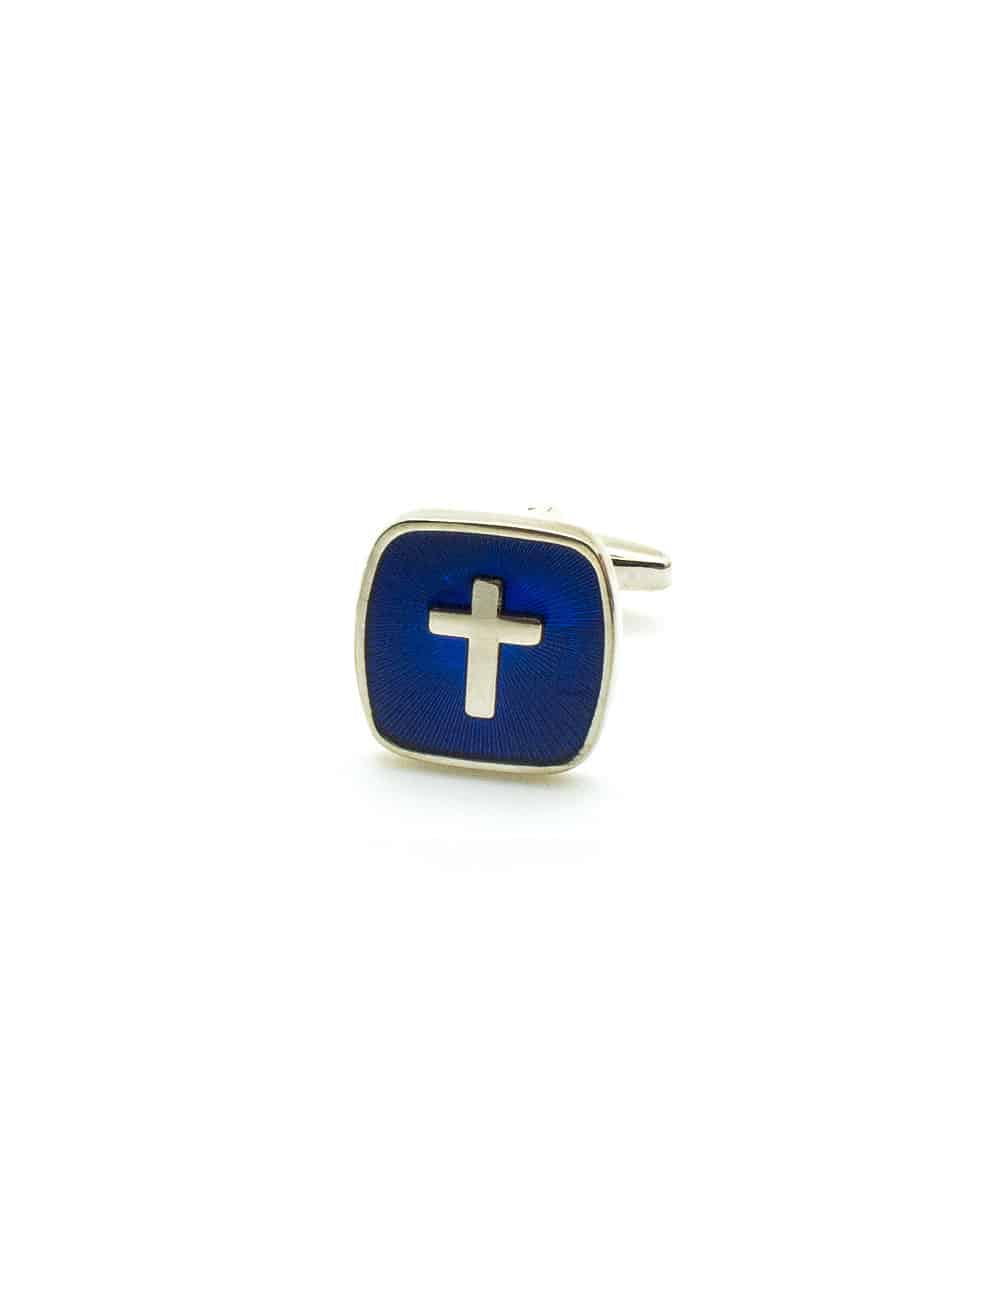 Silver Cross in Blue Enamel Square Cufflink C231NF-044B